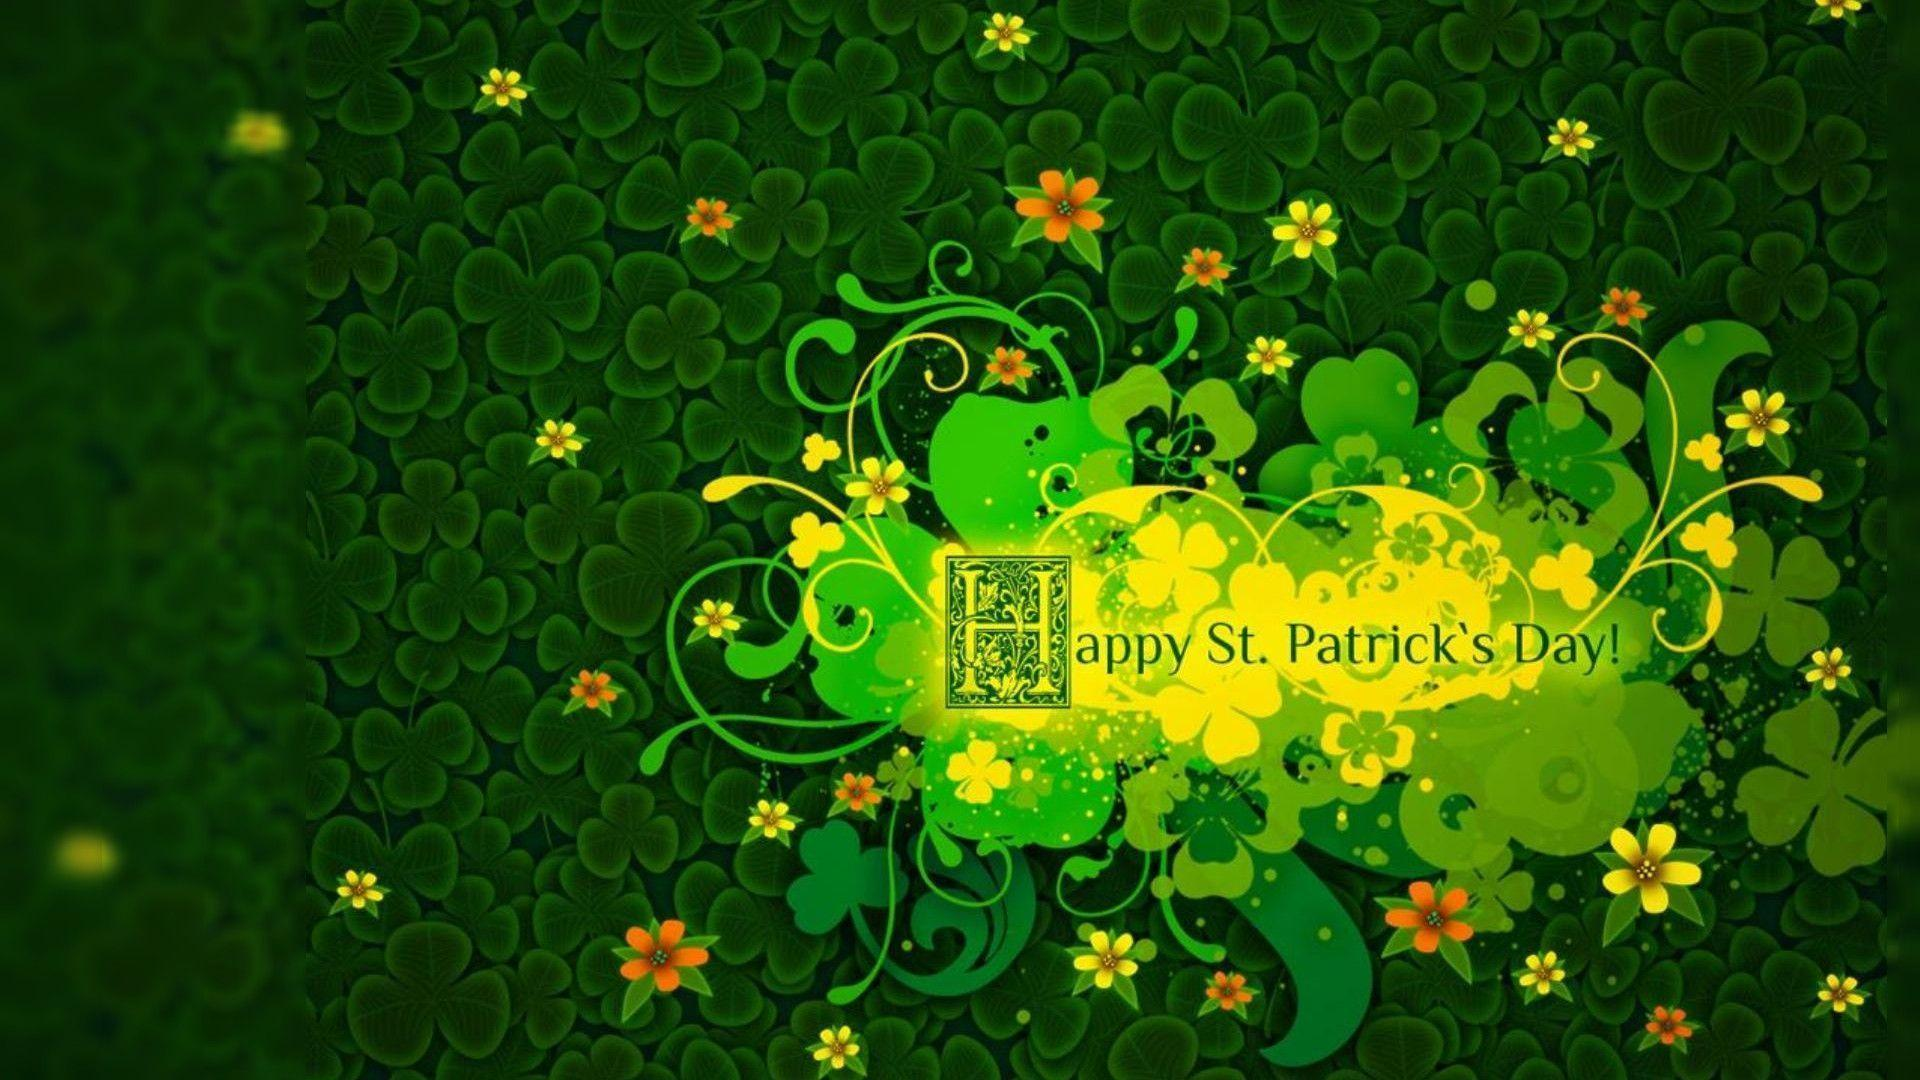 Download St Patricks Day Wallpaper Hd Backgrounds Download